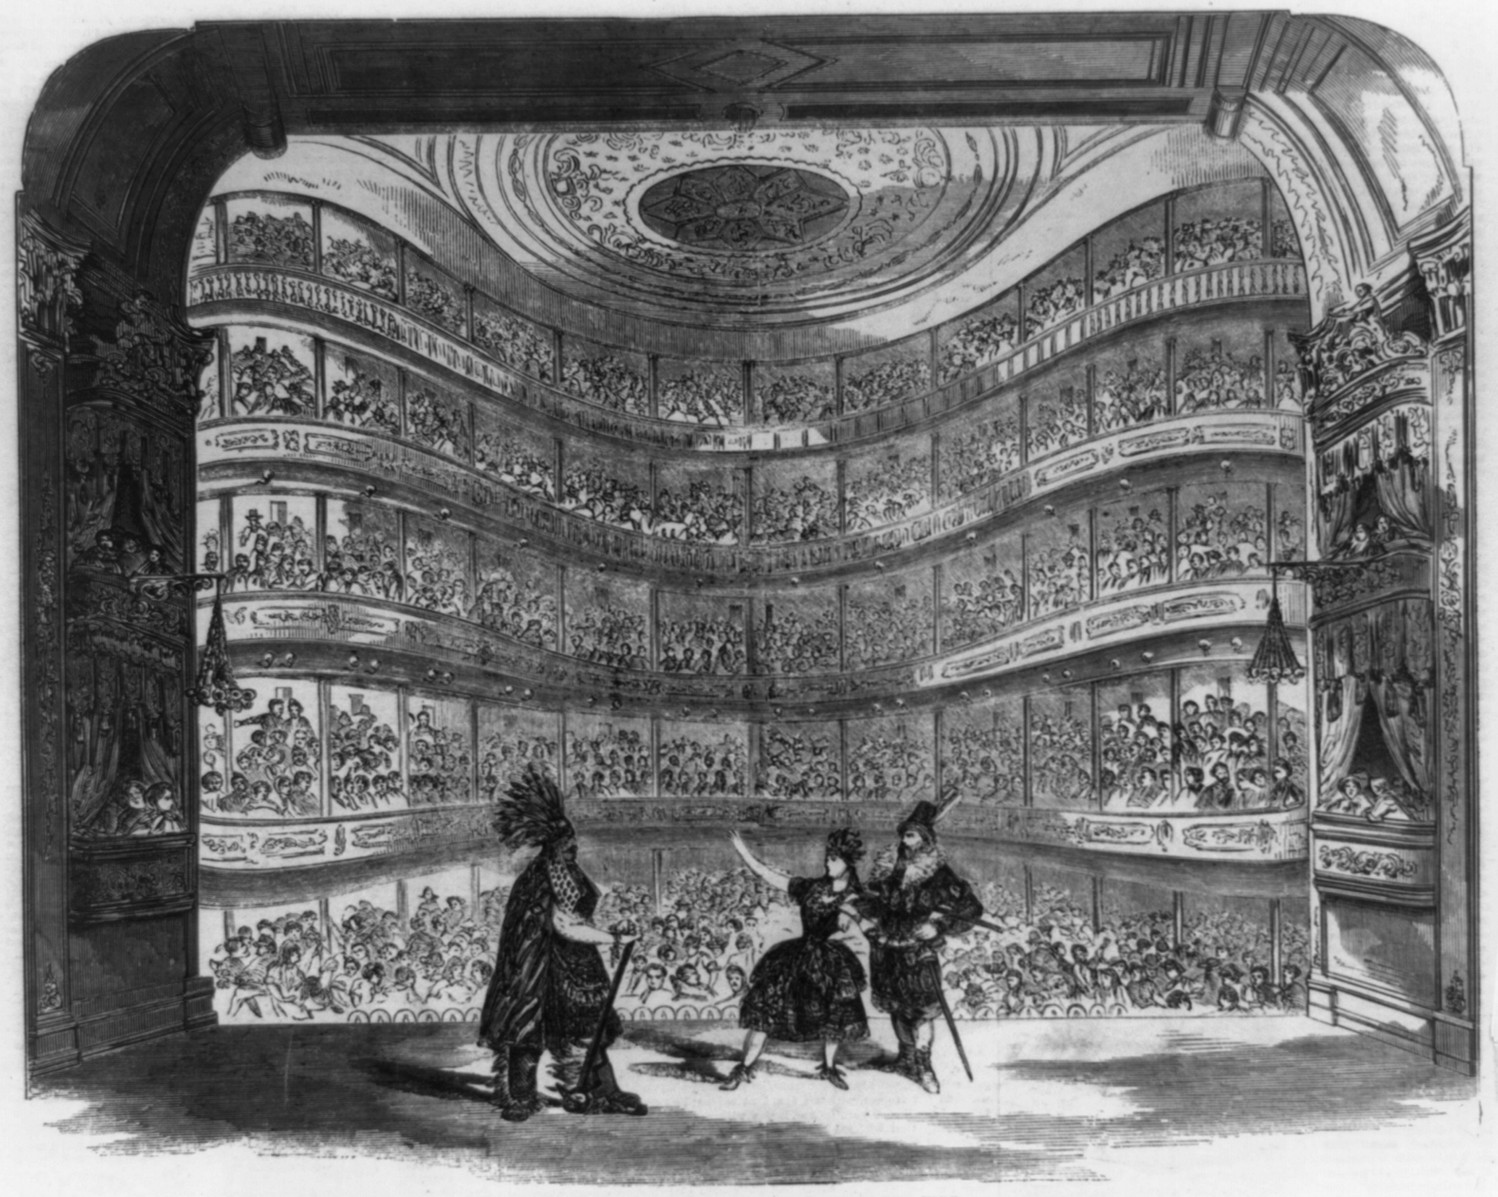 Painting of theatre performance